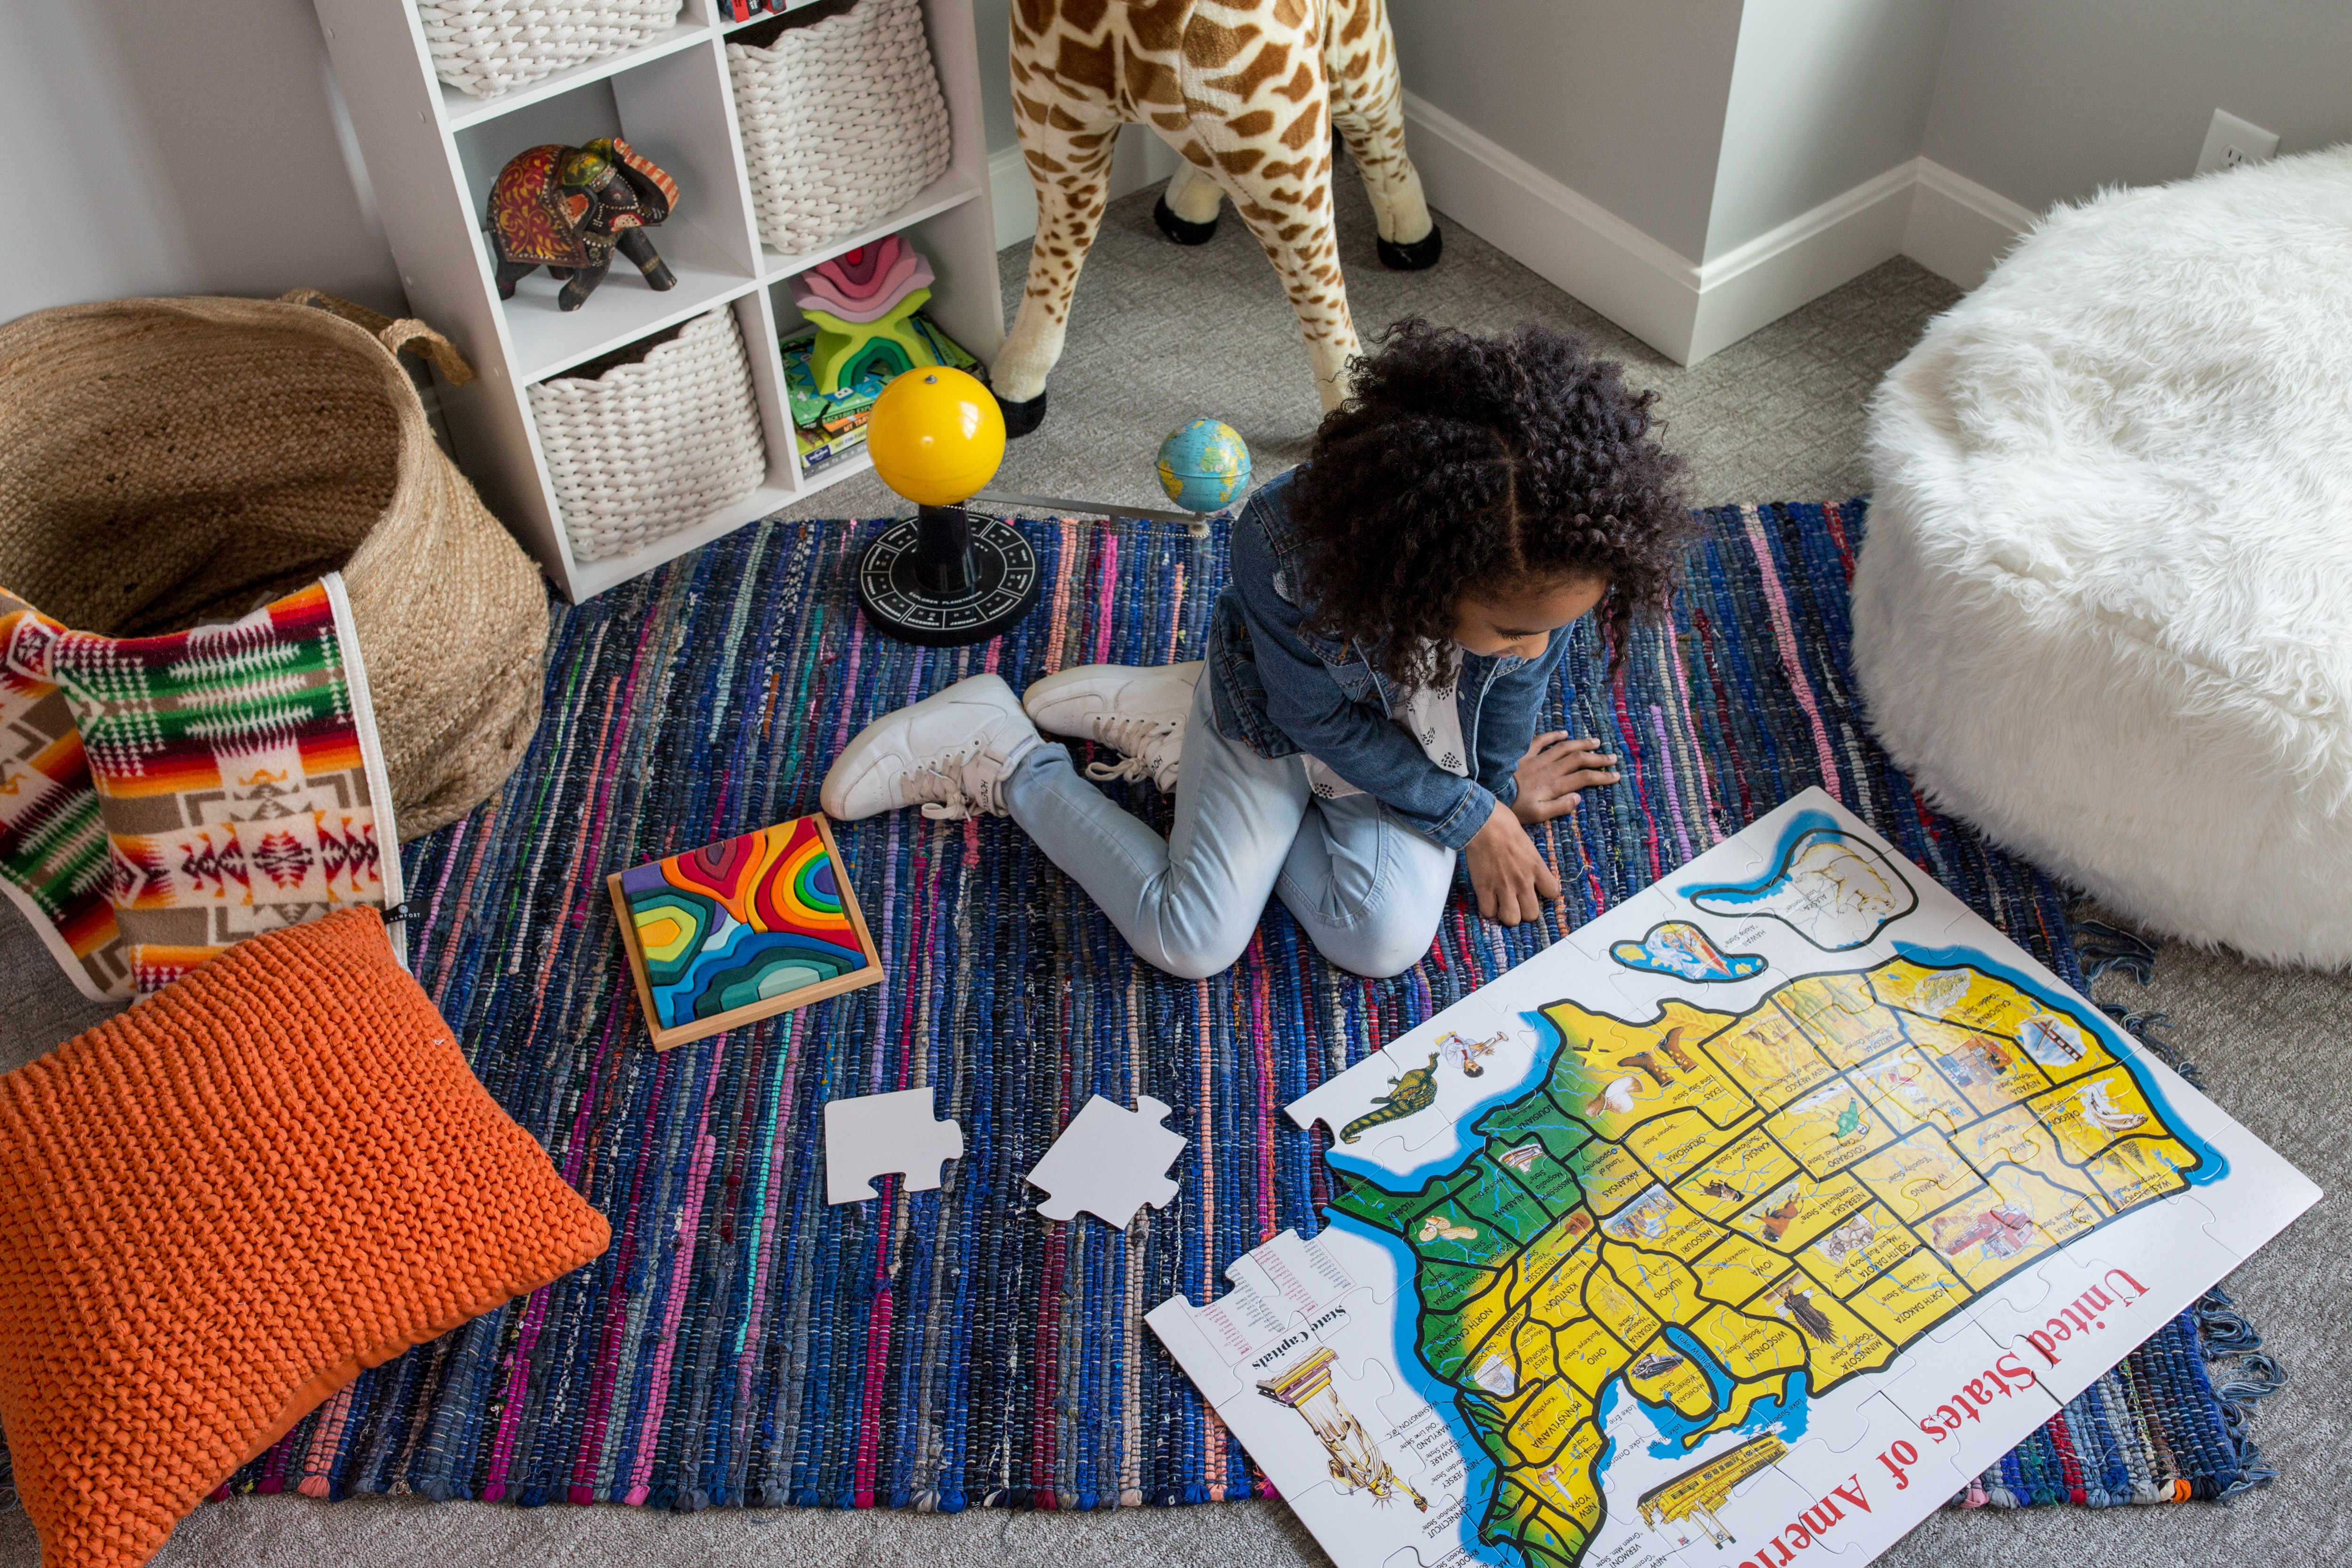 girl playing map jigsaw puzzle